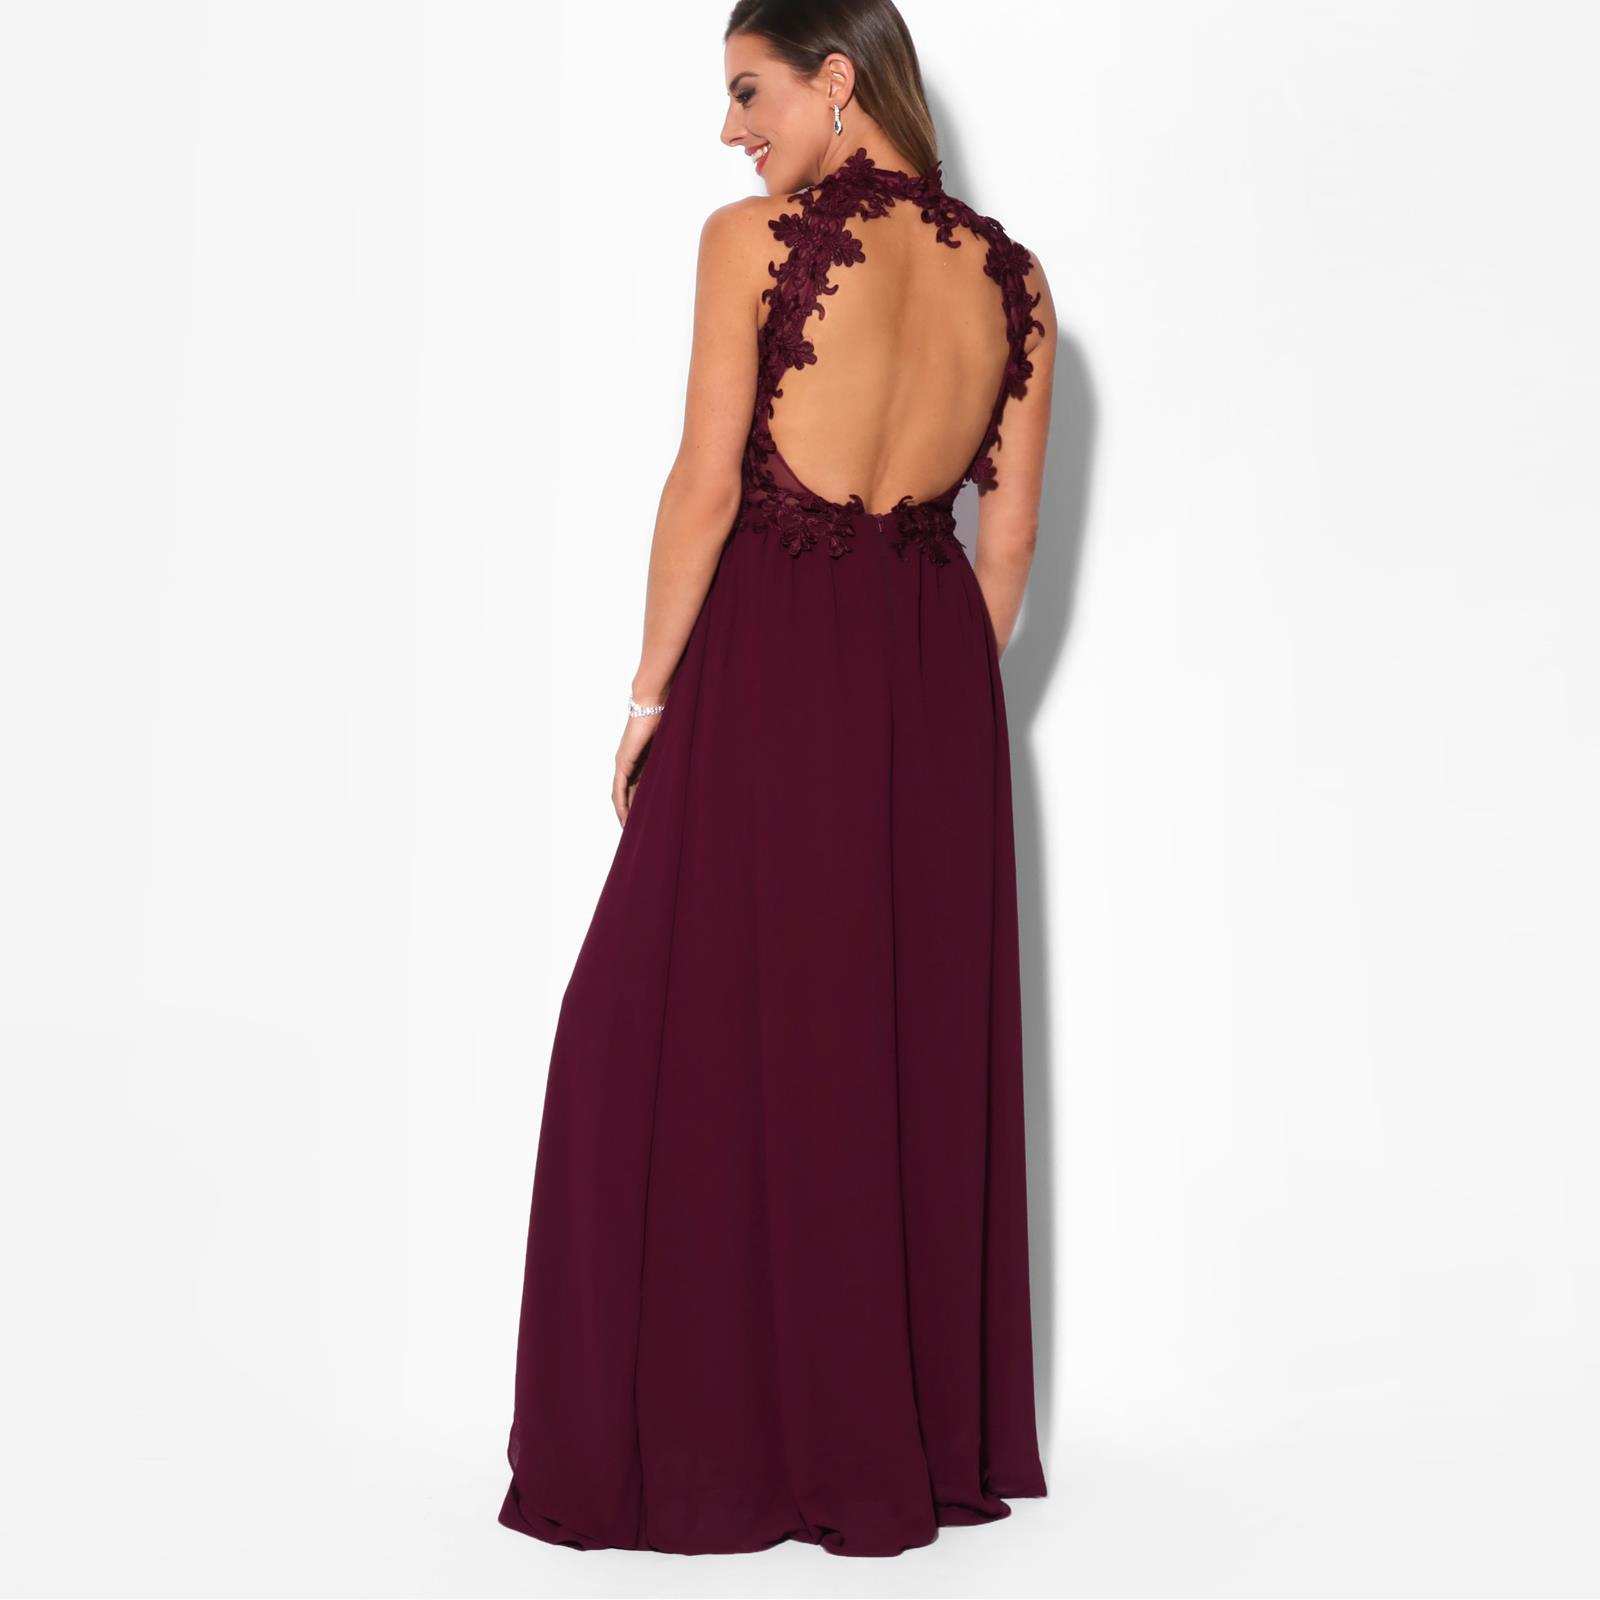 Women-Lace-Halterneck-Maxi-Dress-Long-Evening-Cocktail-Ball-Gown-Formal-Party thumbnail 13